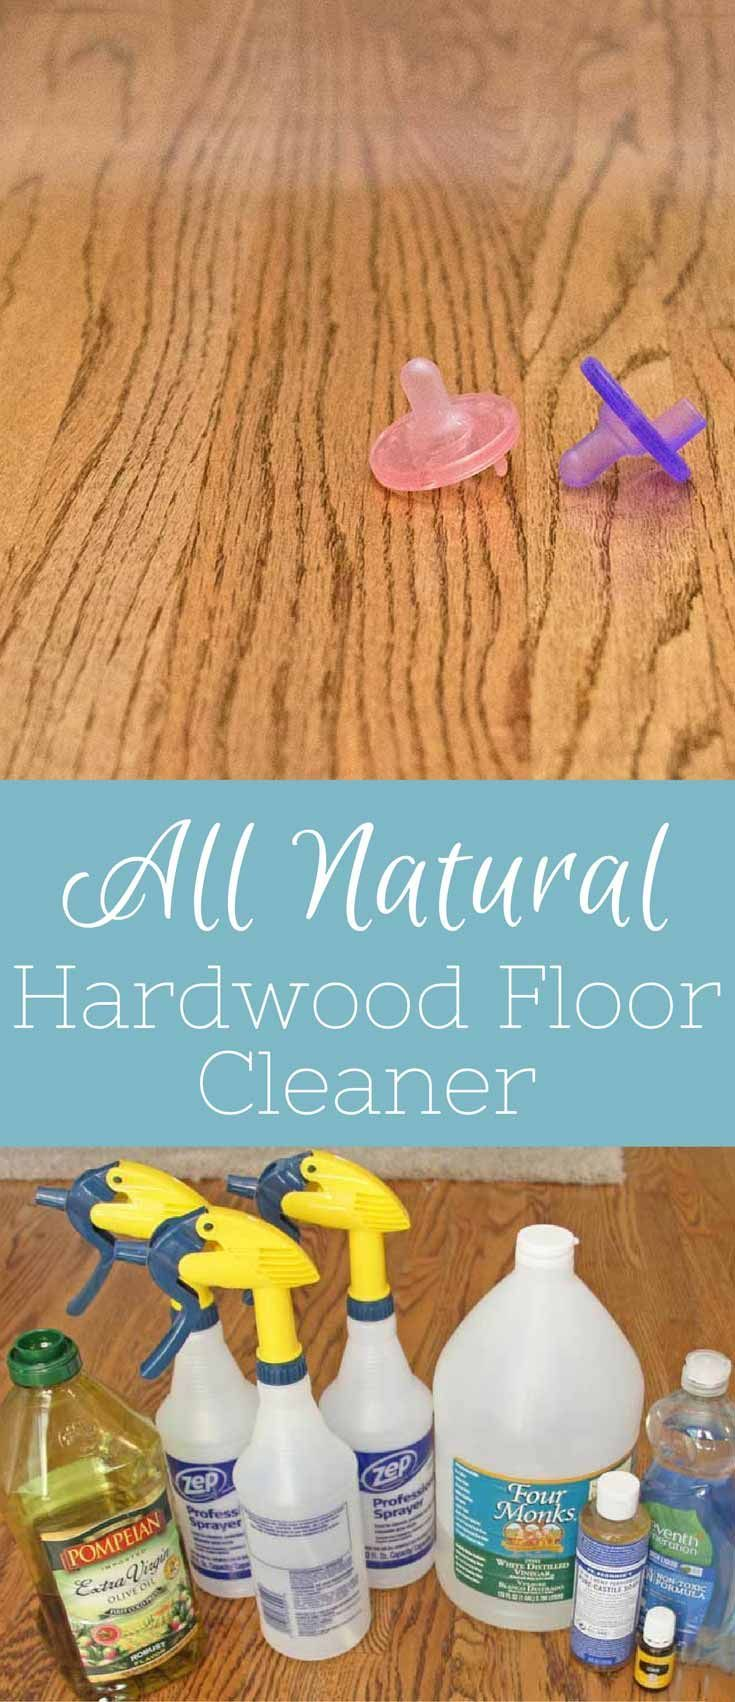 All Natural Homemade Hardwood Floor Cleaners